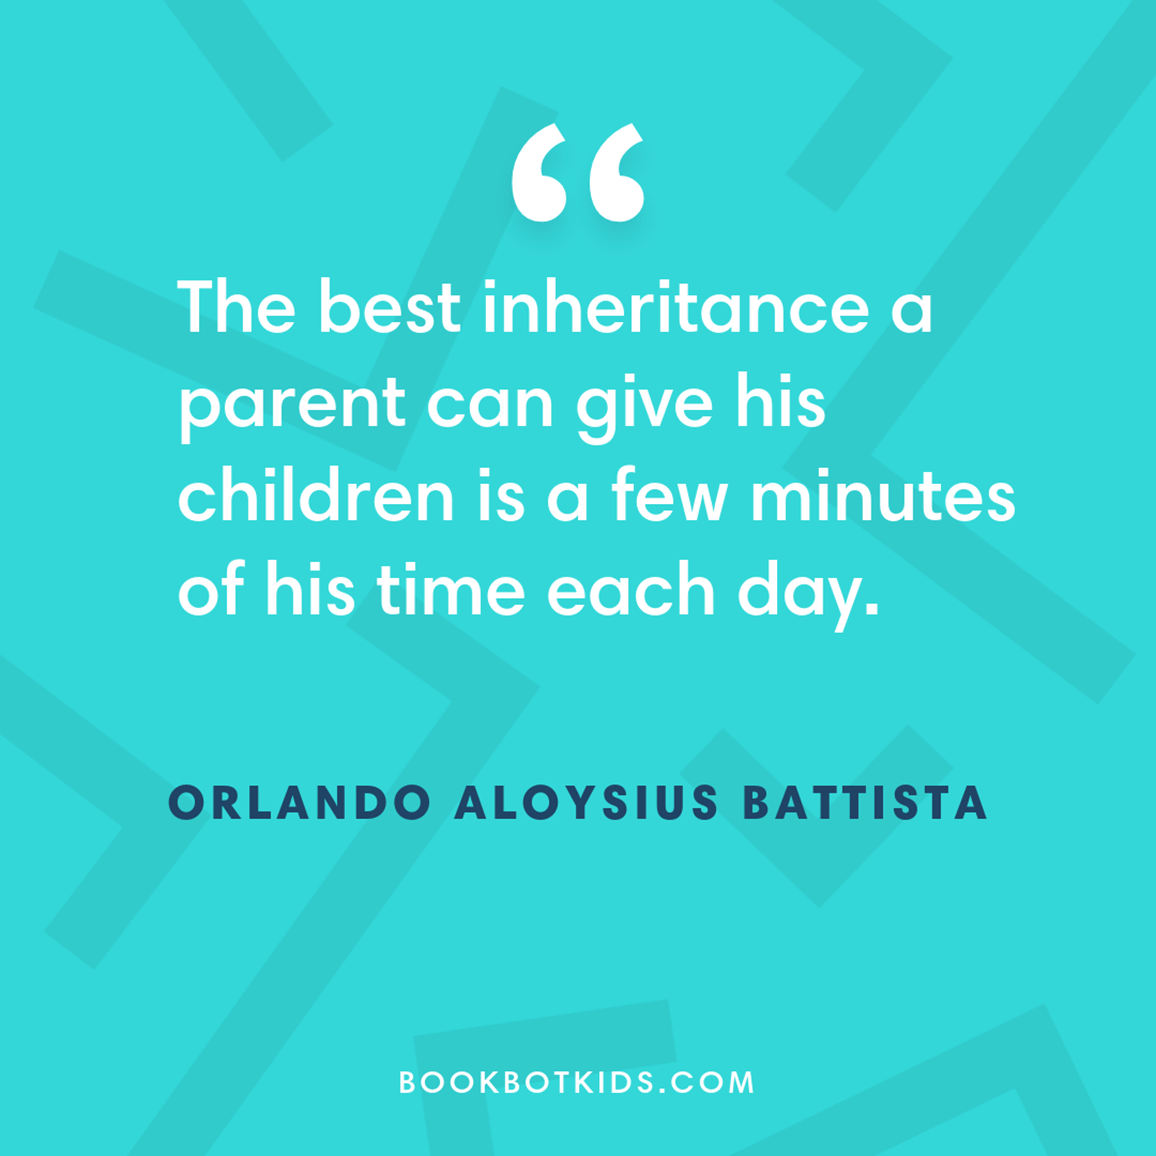 The best inheritance a parent can give his children is a few minutes of his time each day. – Orlando Aloysius Battista